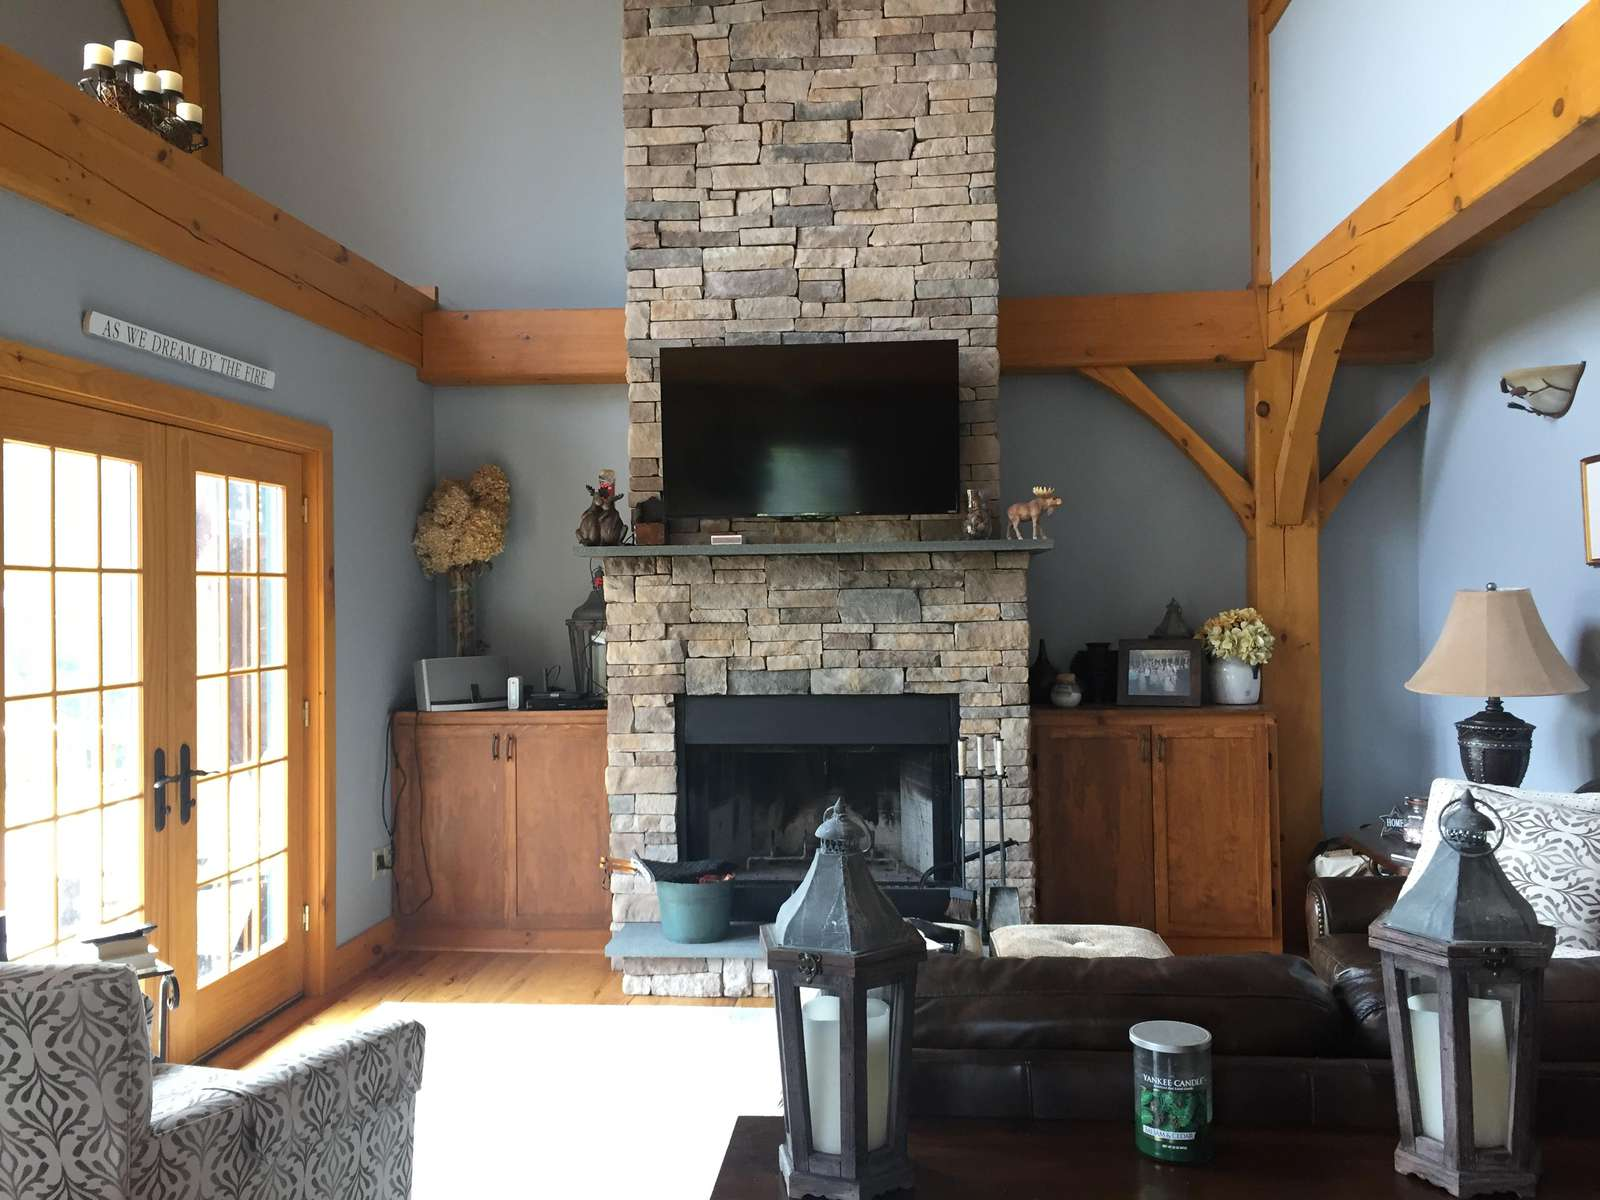 Vaulted ceilings and timber framing